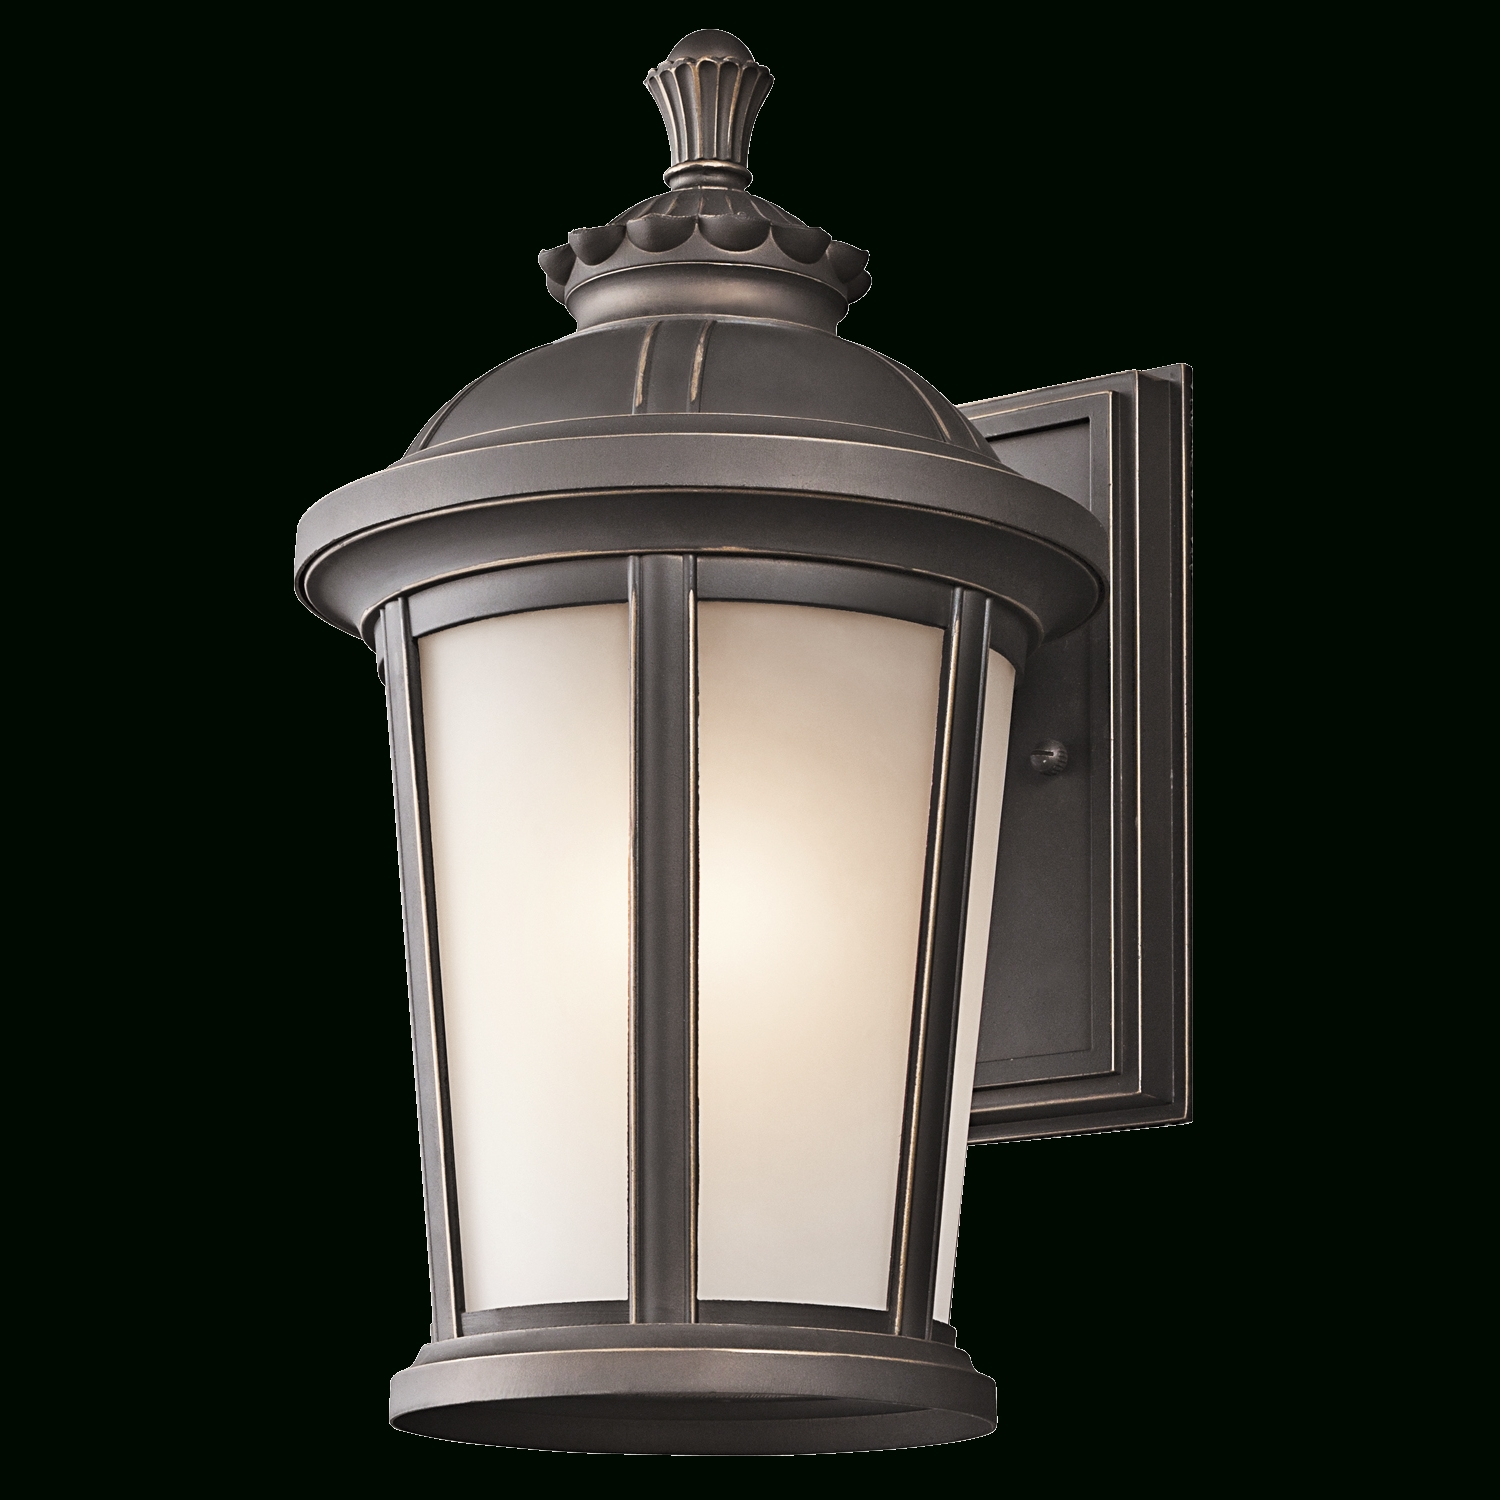 Bronze Outdoor Wall Lighting Intended For Most Popular Ralston Collection 1 Light Outdoor Wall Lamp In Rubbed Bronze (View 13 of 20)